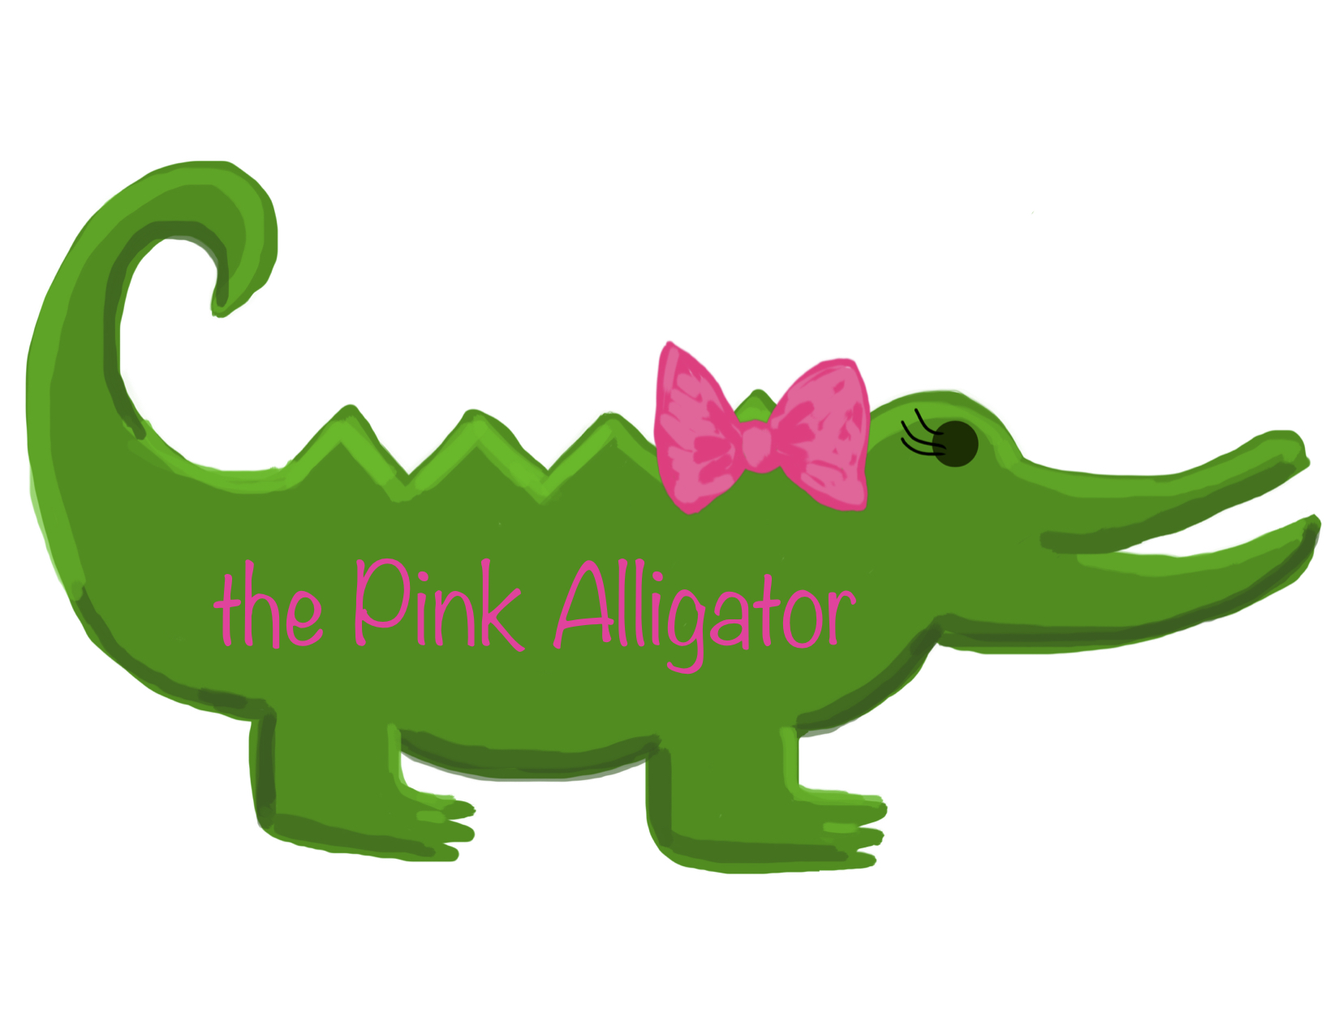 The Pink Alligator